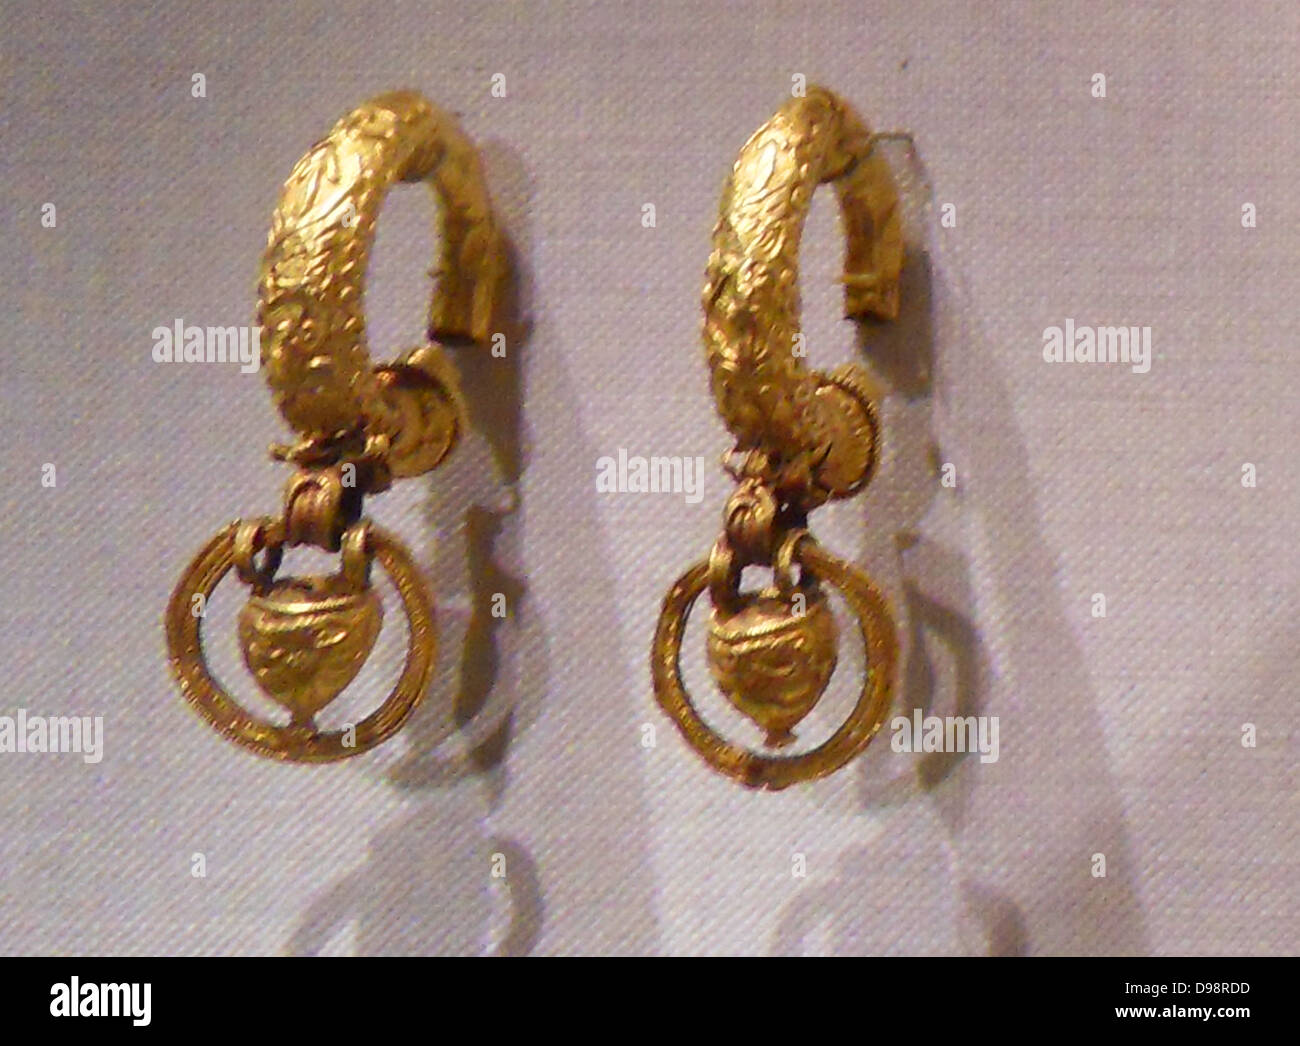 Etruscan gold earrings dated from 4th -3rd Century BC - Stock Image